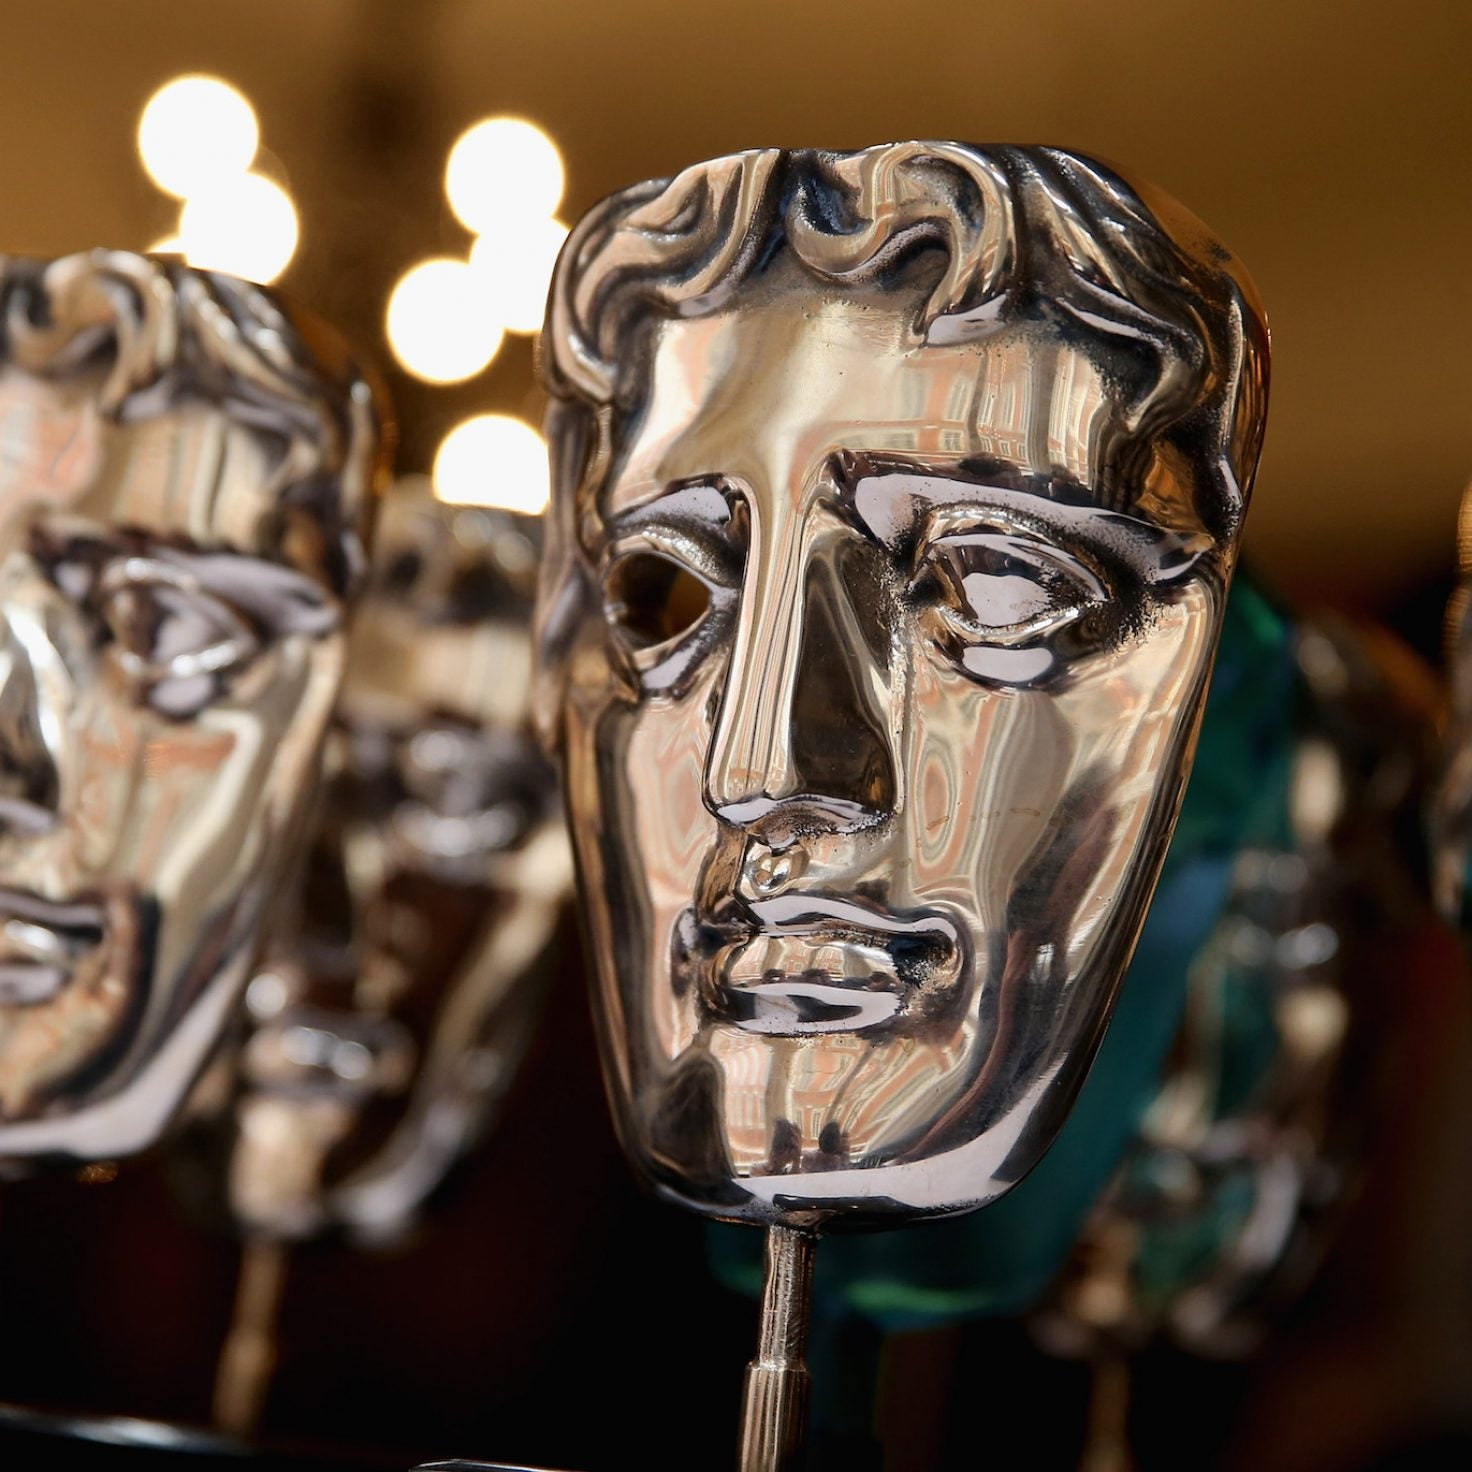 Only White Actors Received Nominations For The 2020 BAFTAs